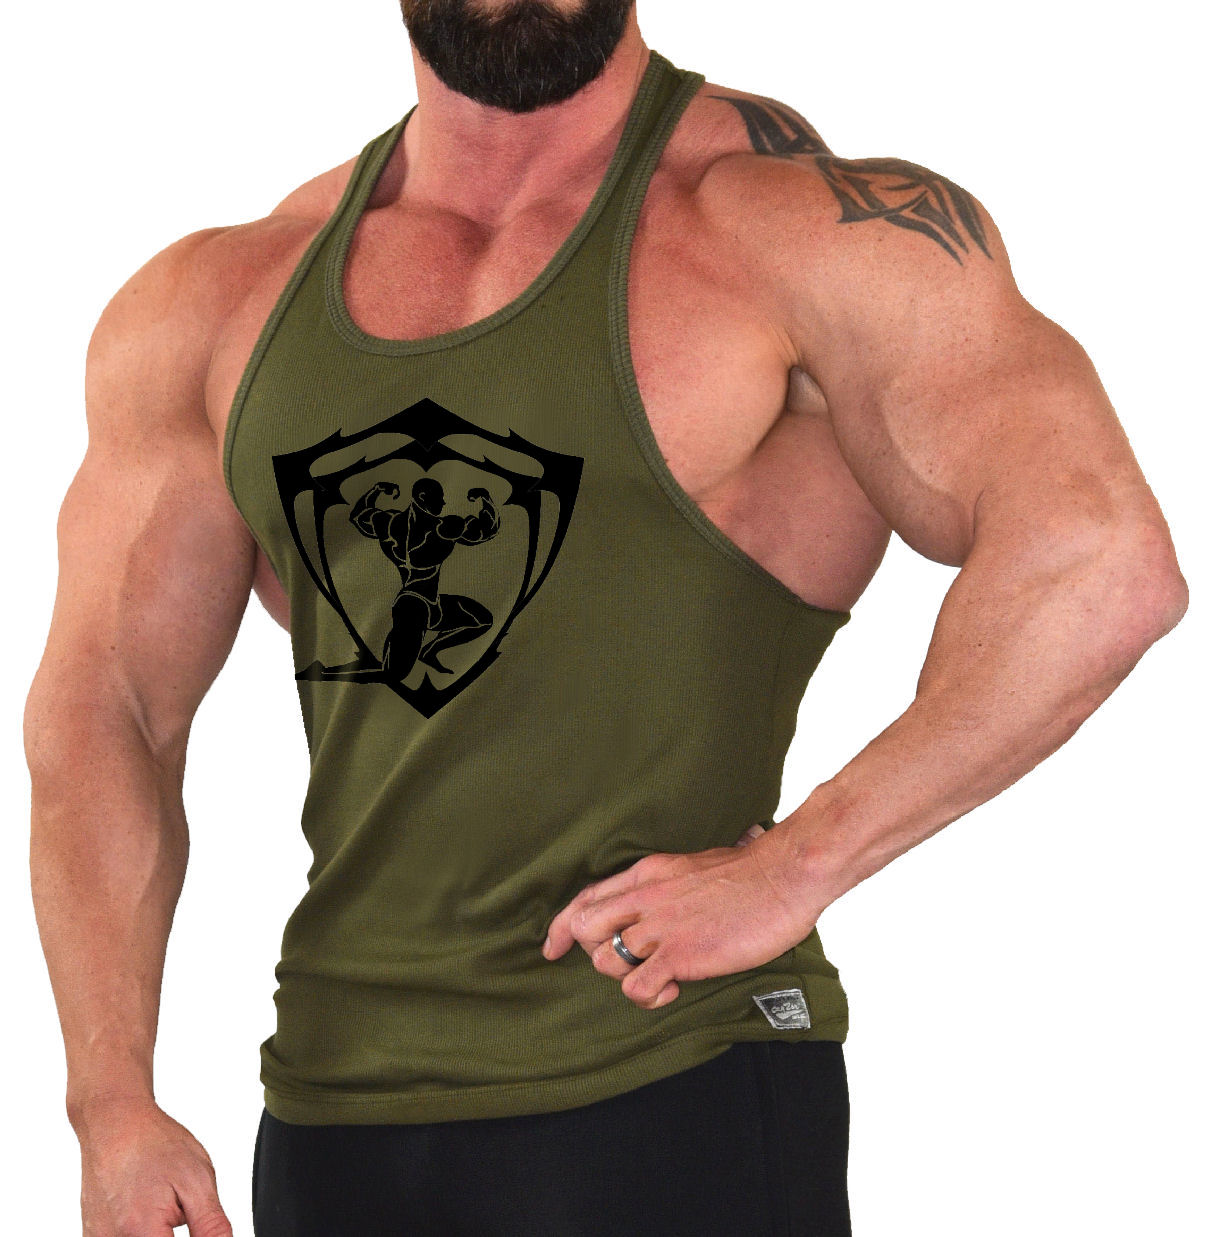 Stringer Tank Top In Army Green With Sparta Design